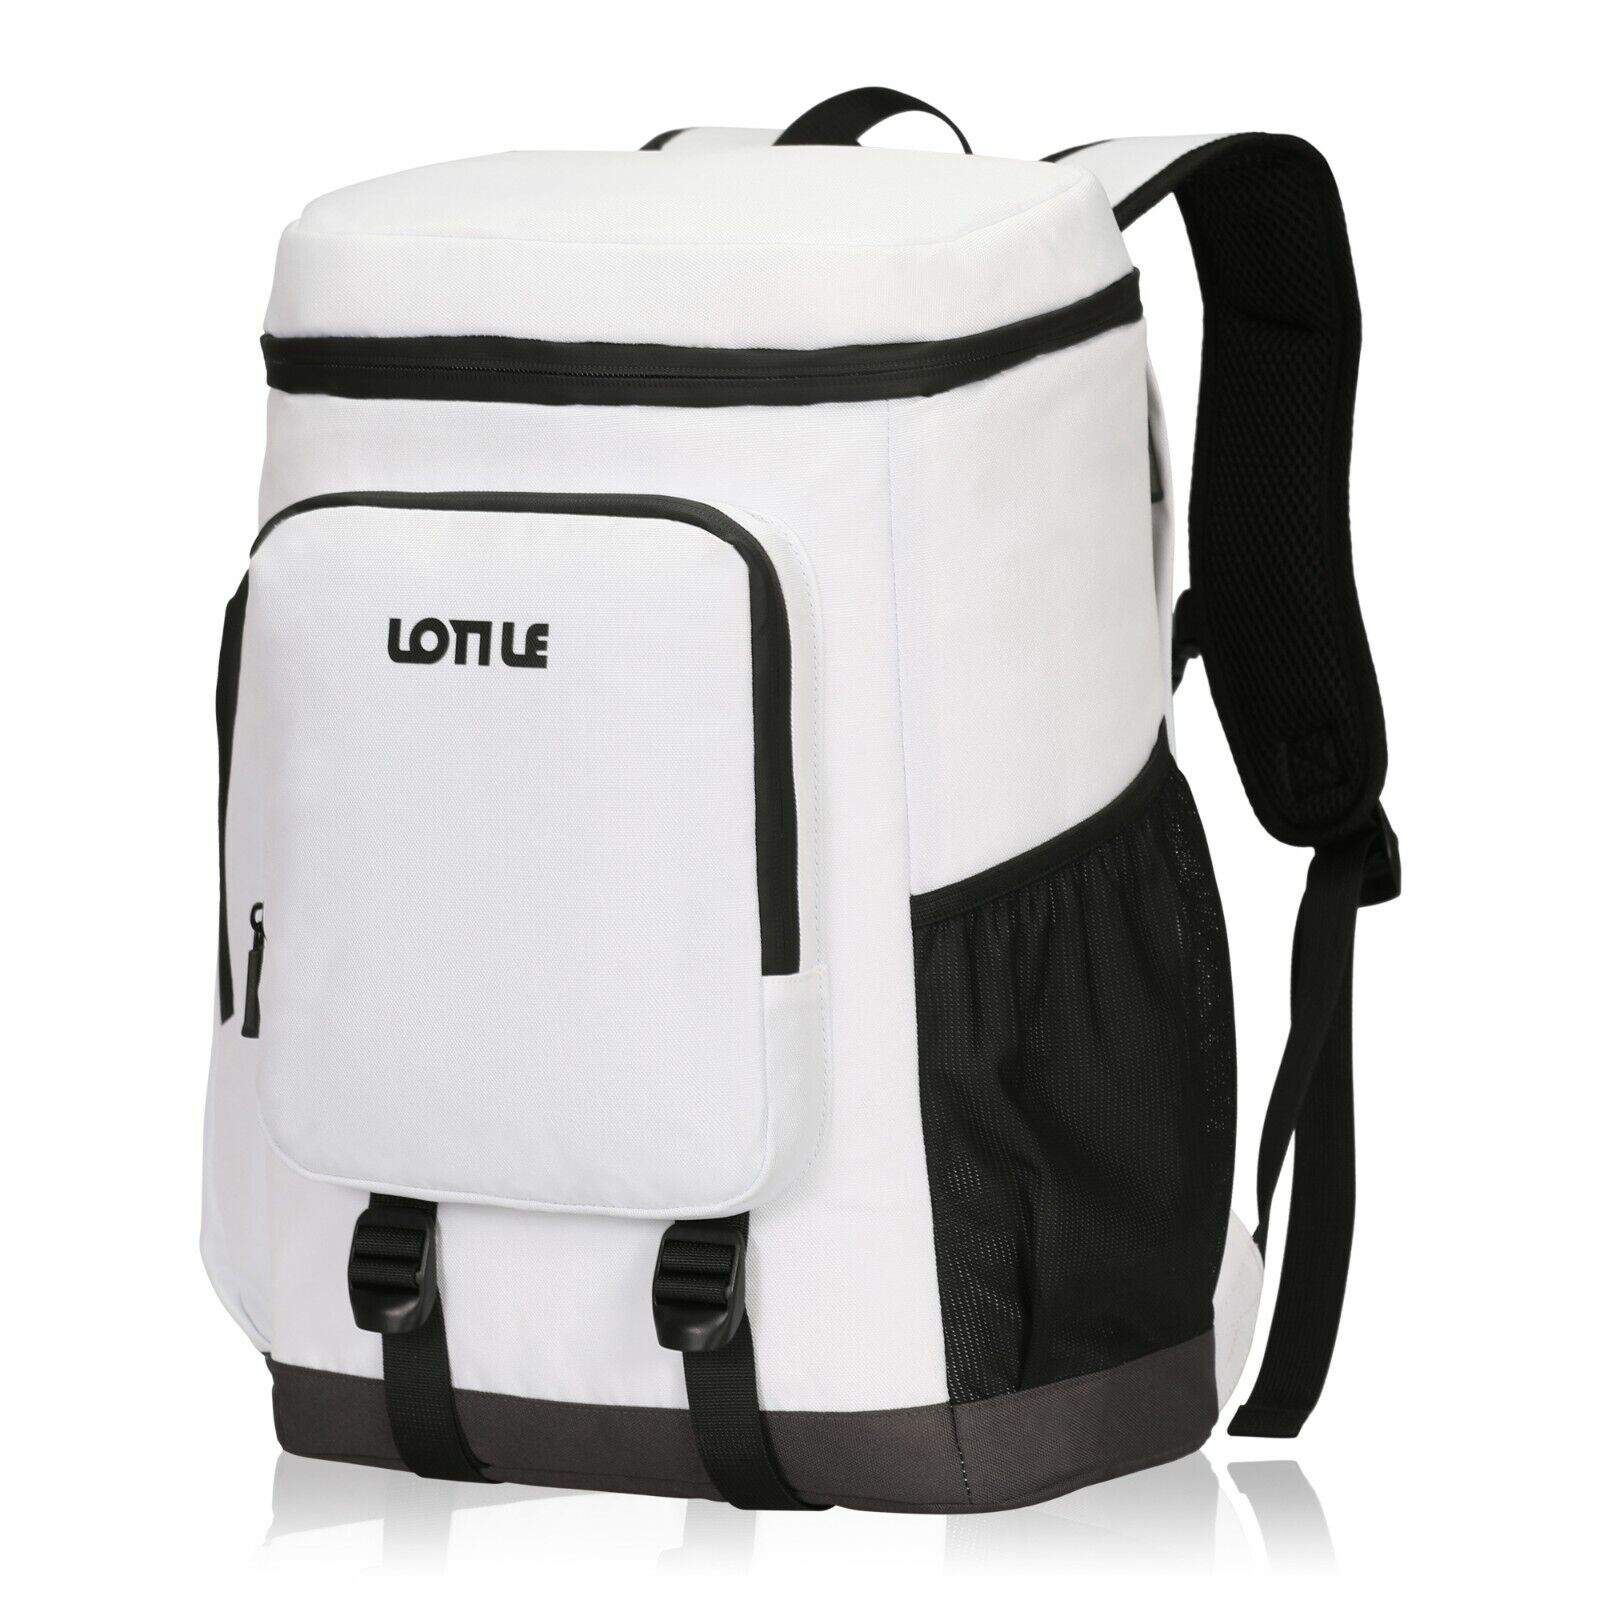 Waterproof 27 Cans Cooler Backpack Leakproof Insulated Soft Cooler Bag Picnic